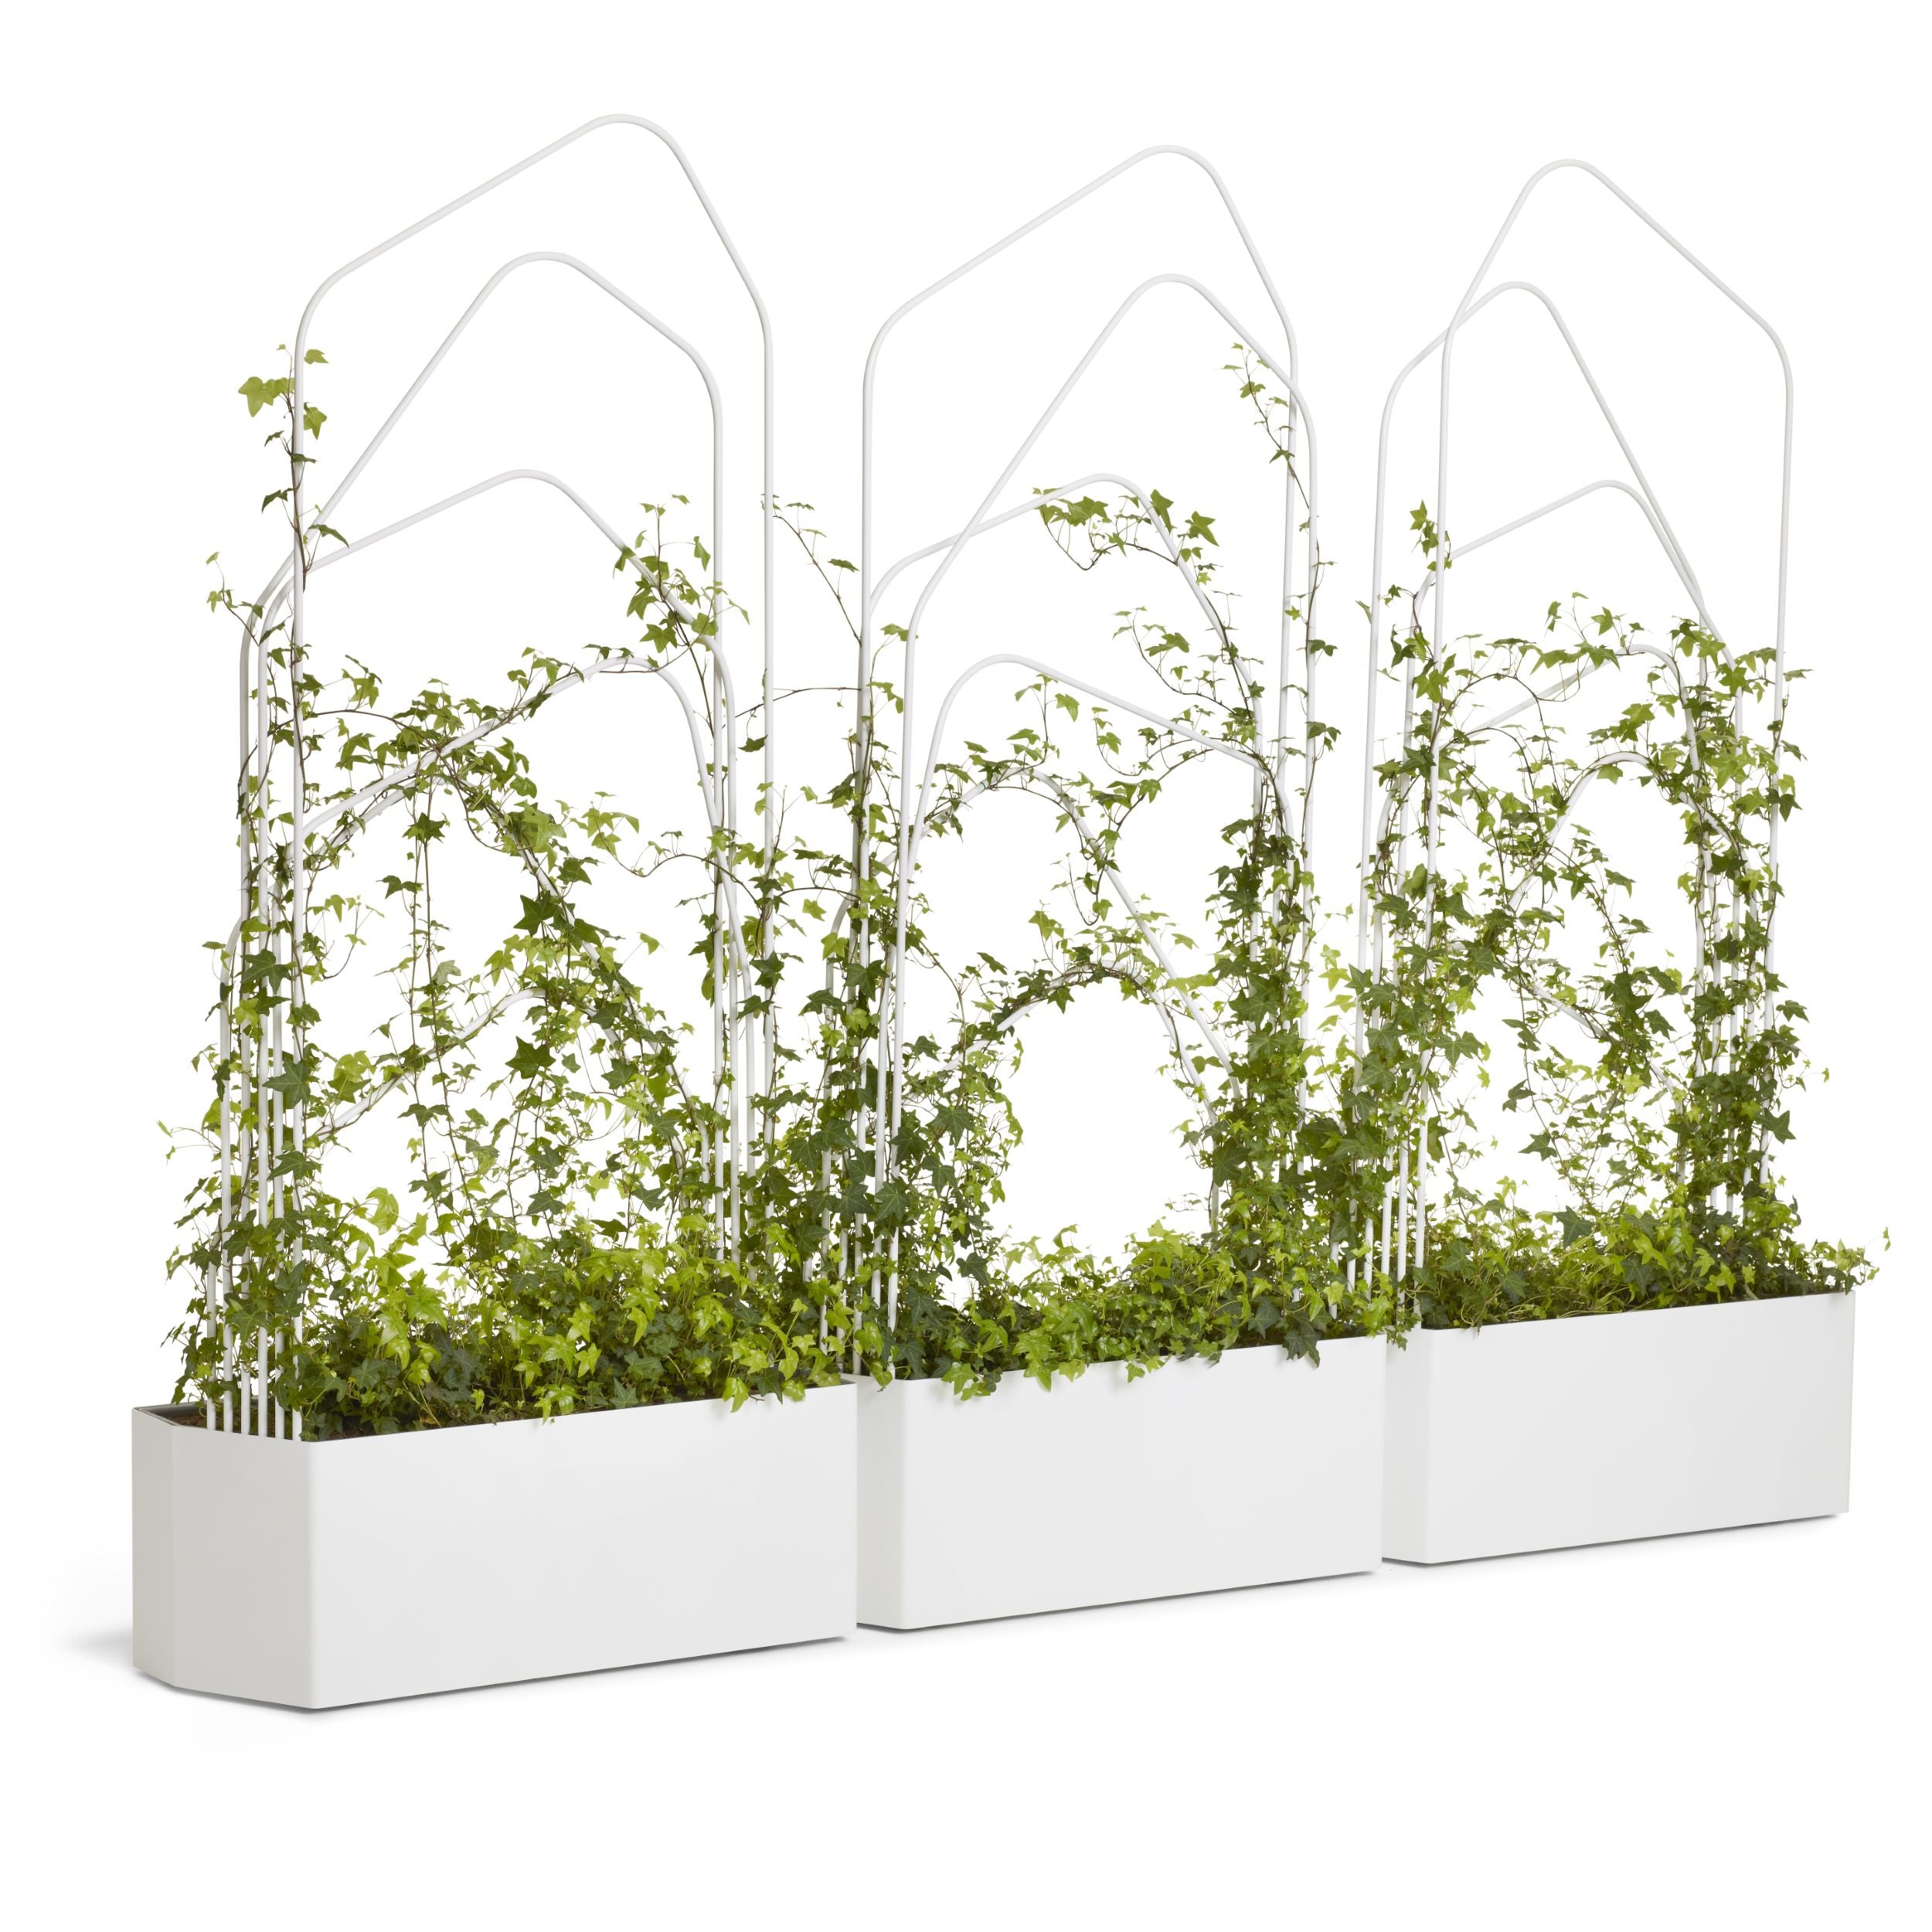 Offecct O2ASIS Green Divider Planter Box